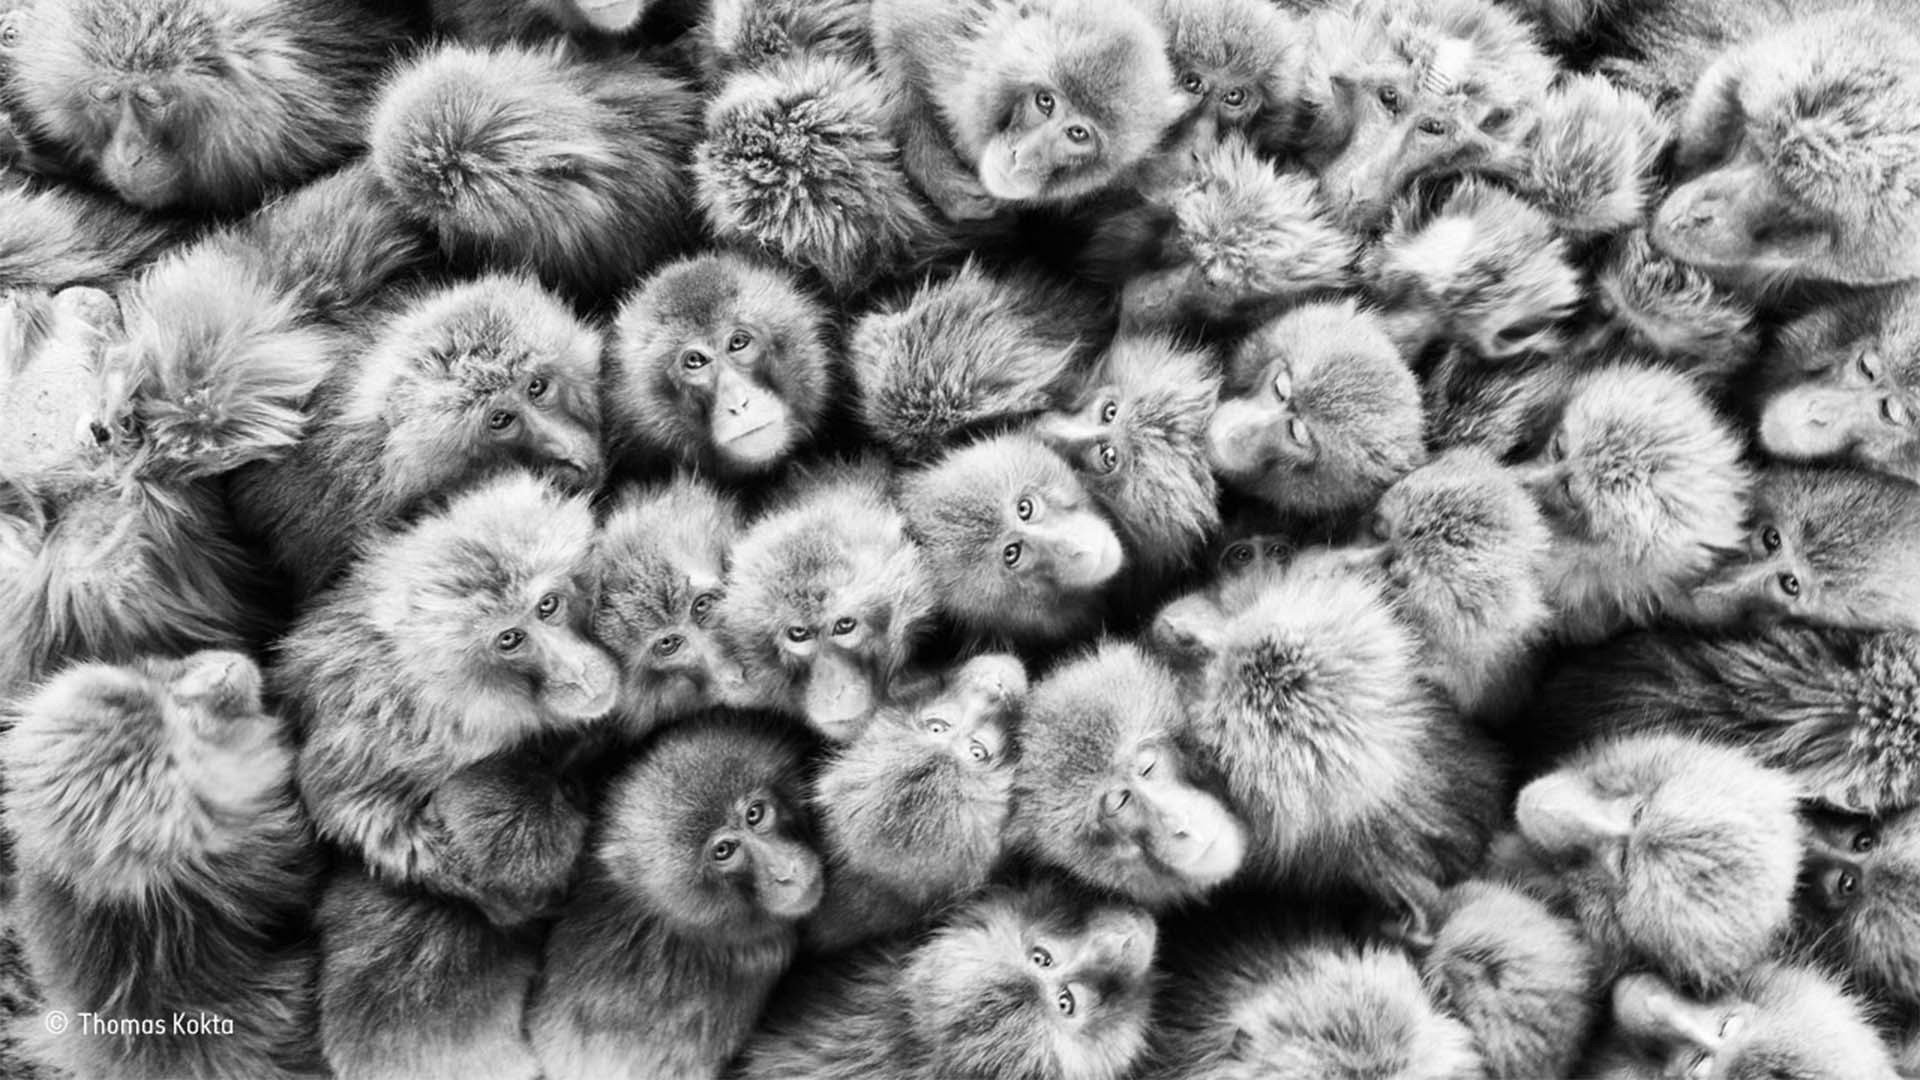 A group of Japanese monkeys huddle together to keep warm